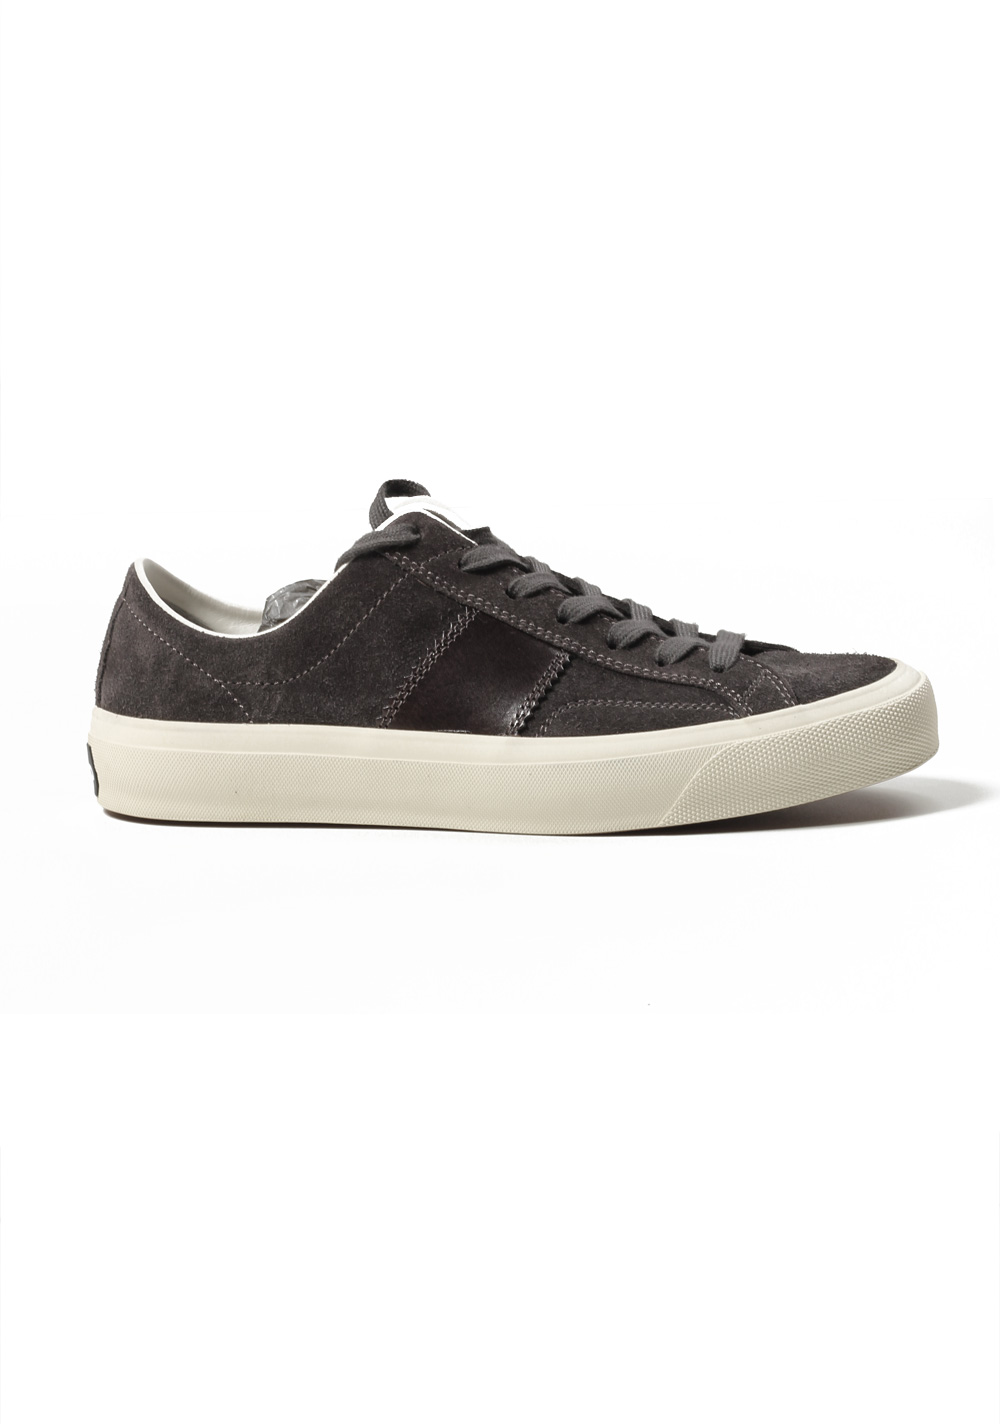 TOM FORD Cambridge Lace Up Dark Gray Suede Sneaker Shoes Size 8,5 UK / 9,5 U.S. | Costume Limité